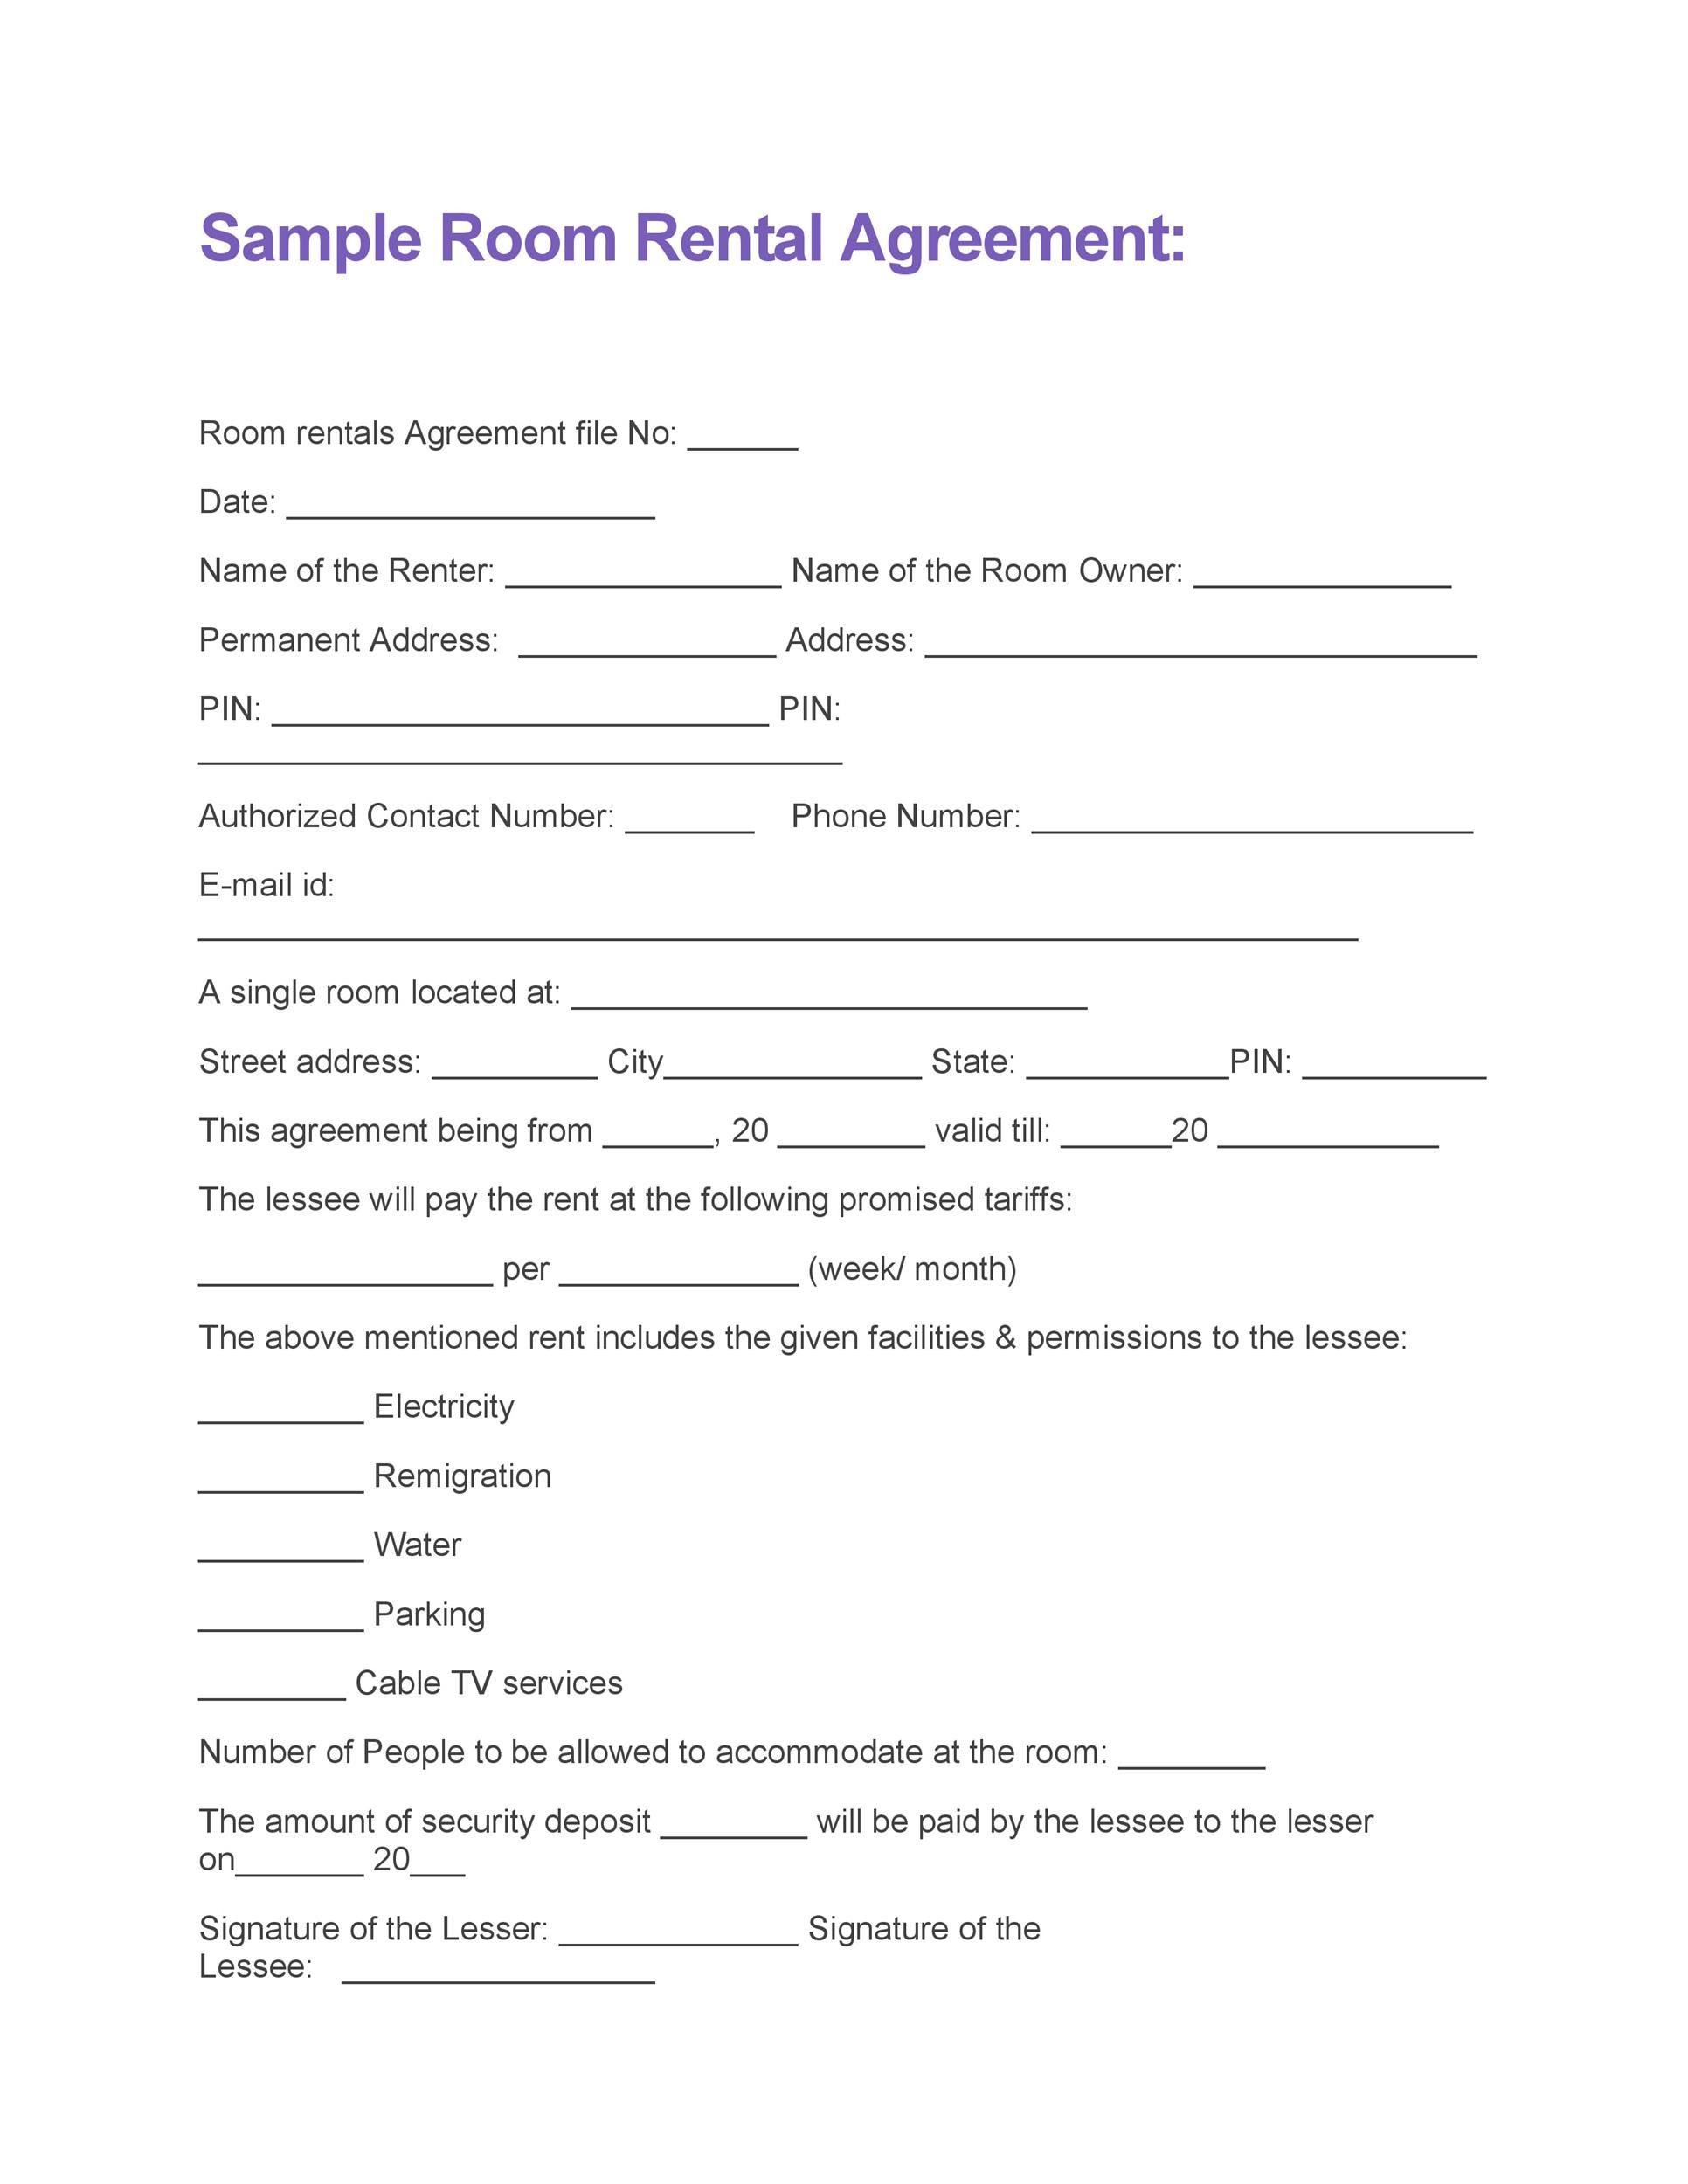 42 Rental Application Forms Lease Agreement Templates – Sample Room Rental Agreement